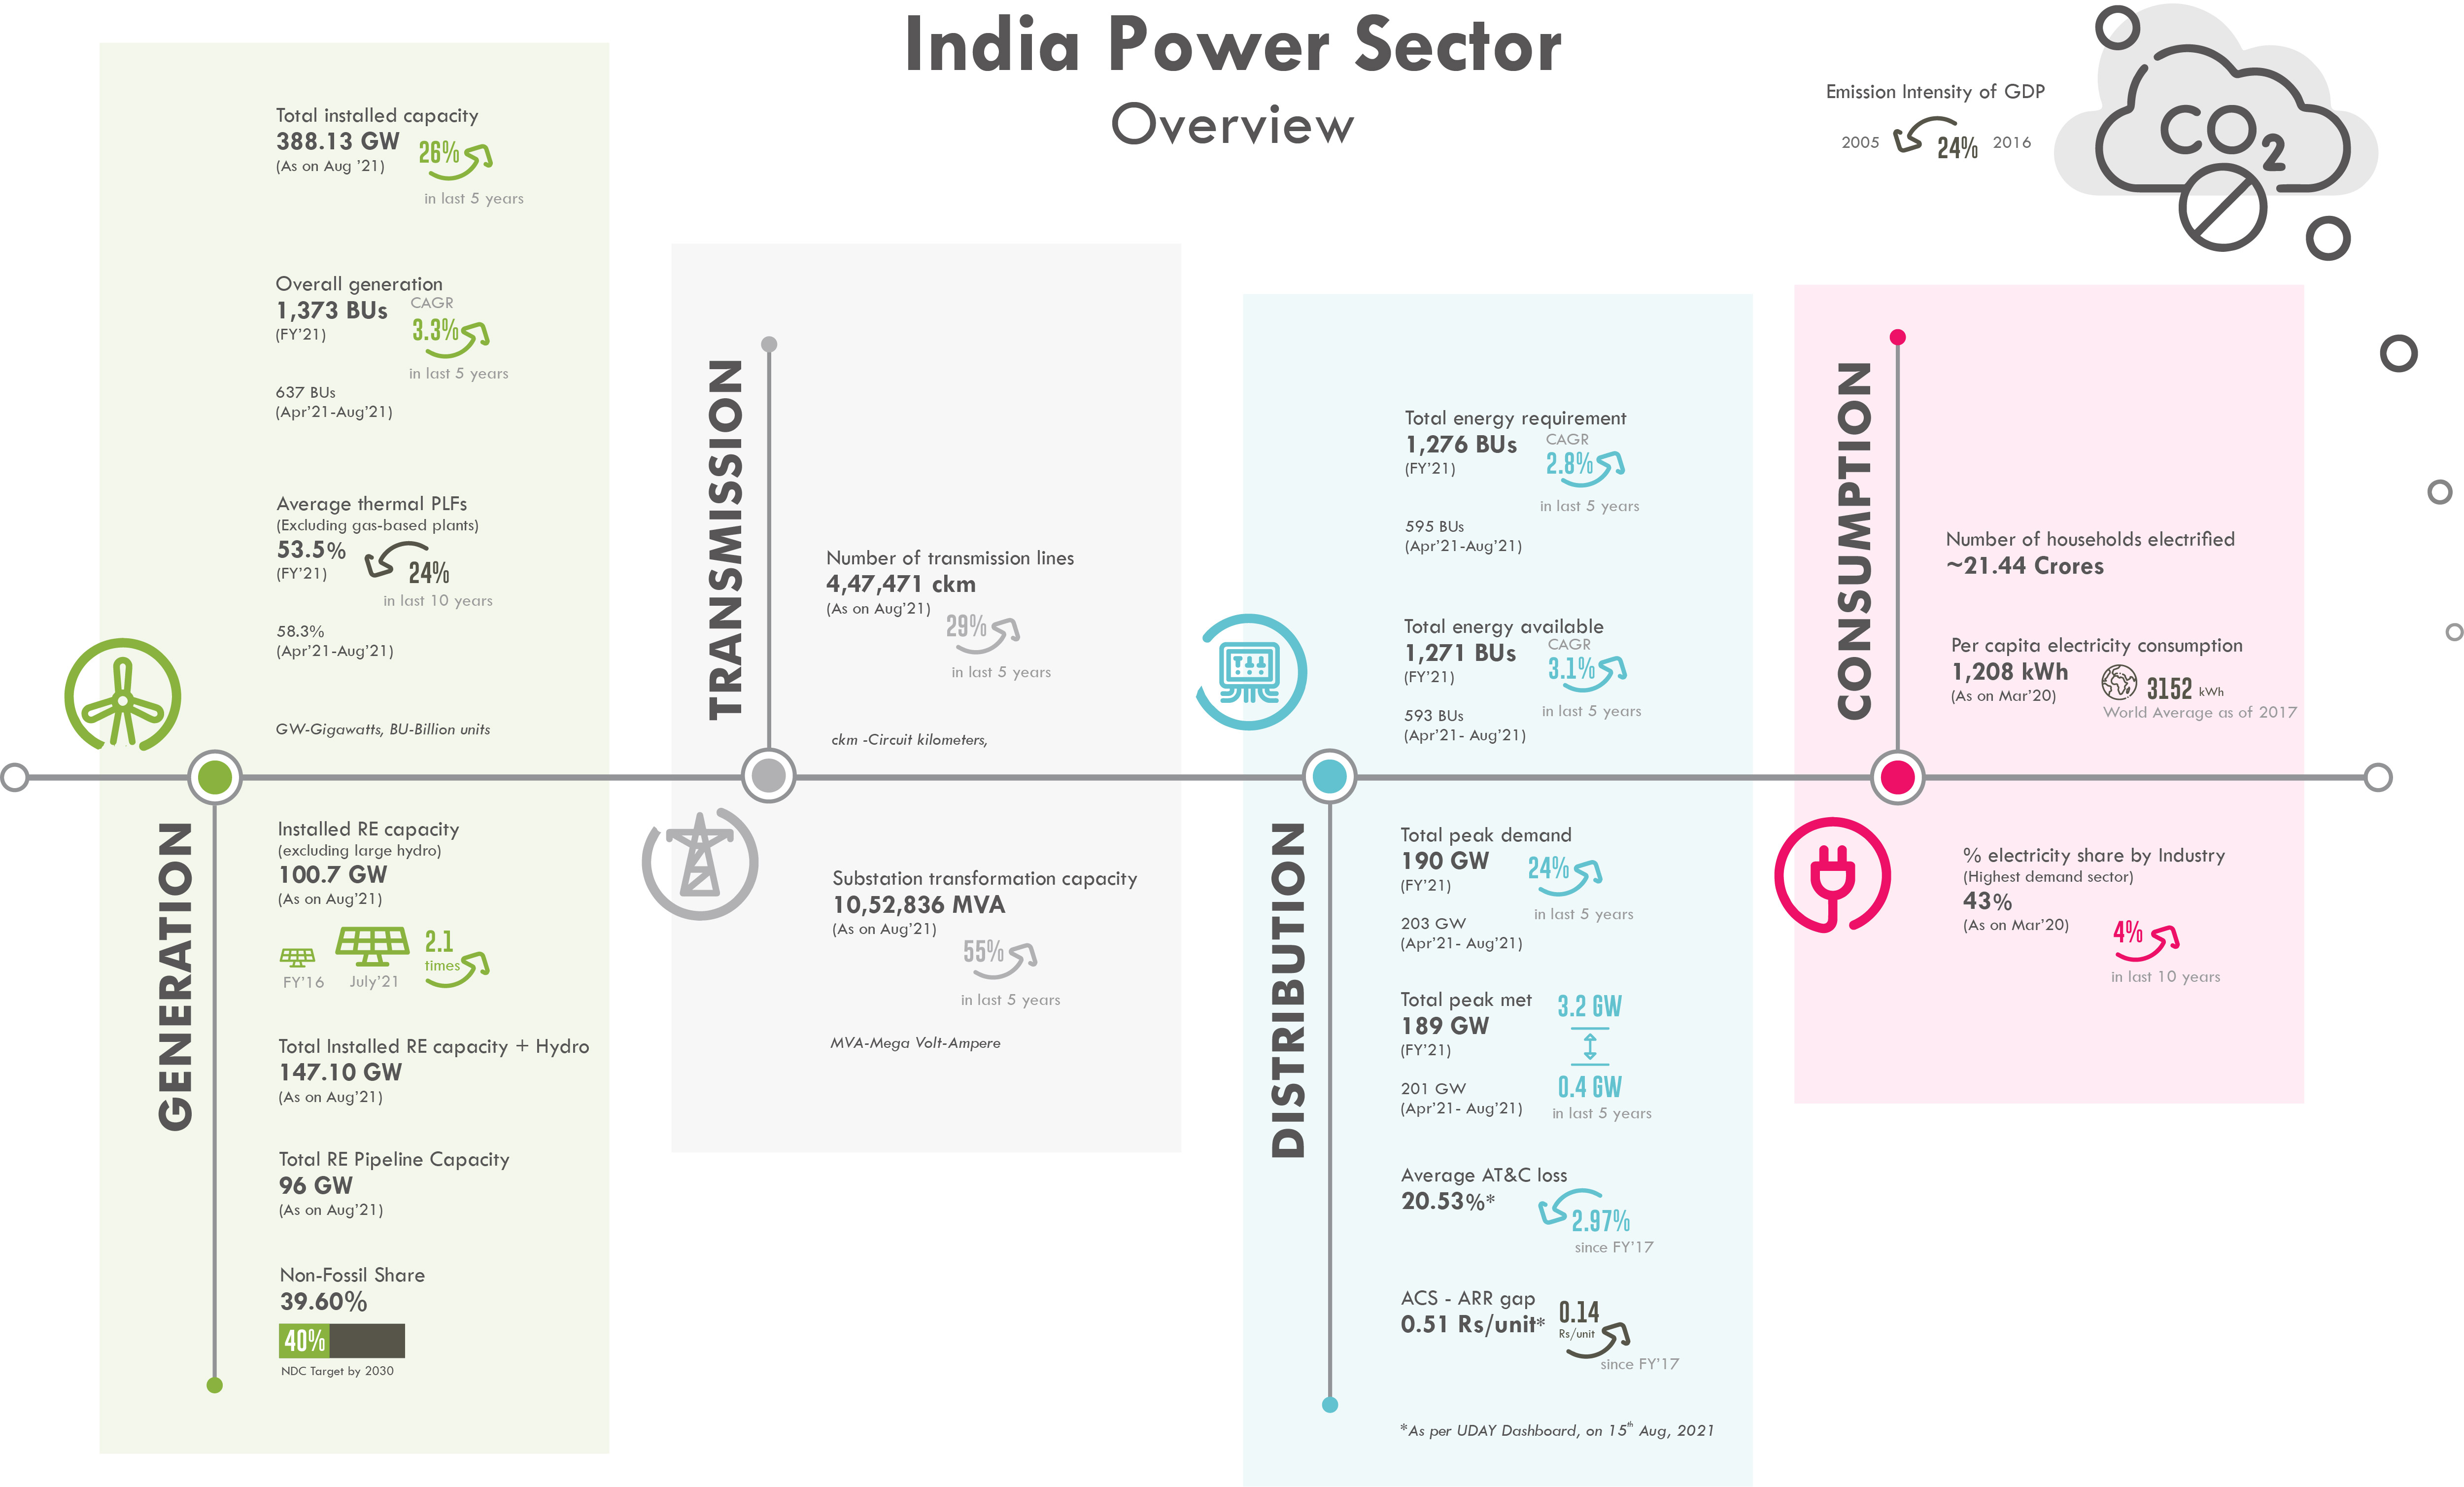 India Power Sector Overview